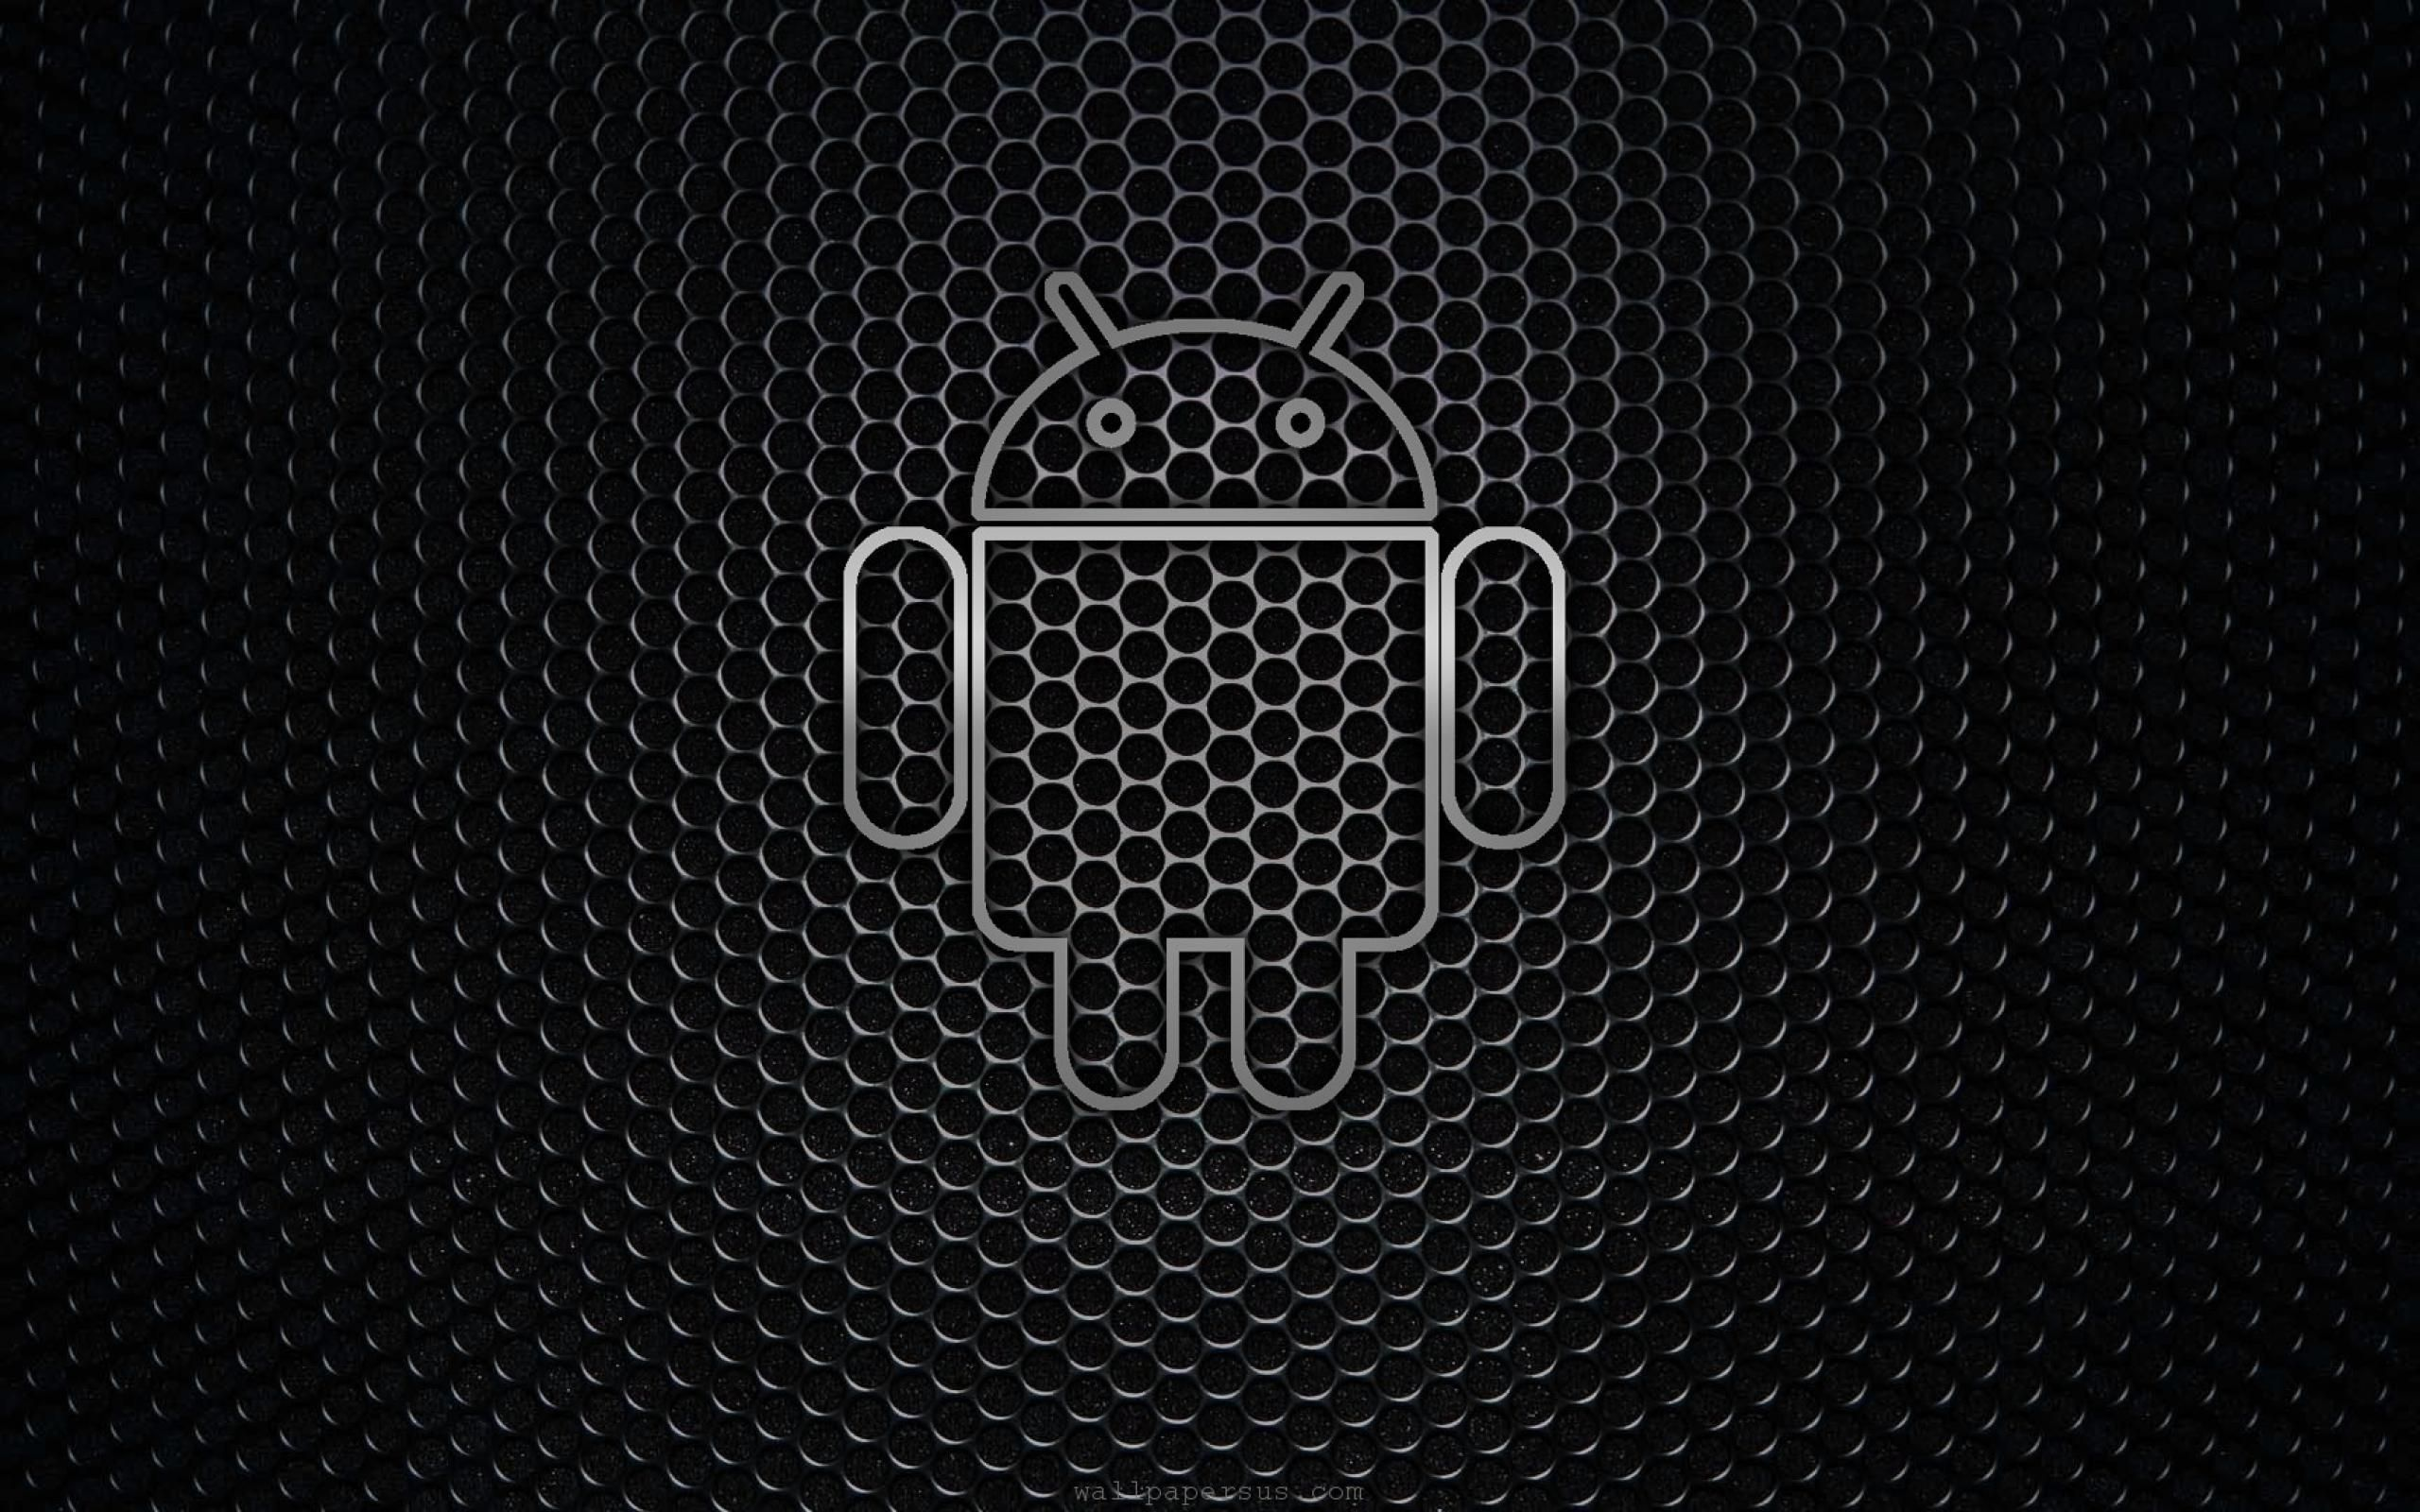 best black android wallpaper desktop and mac 1080p